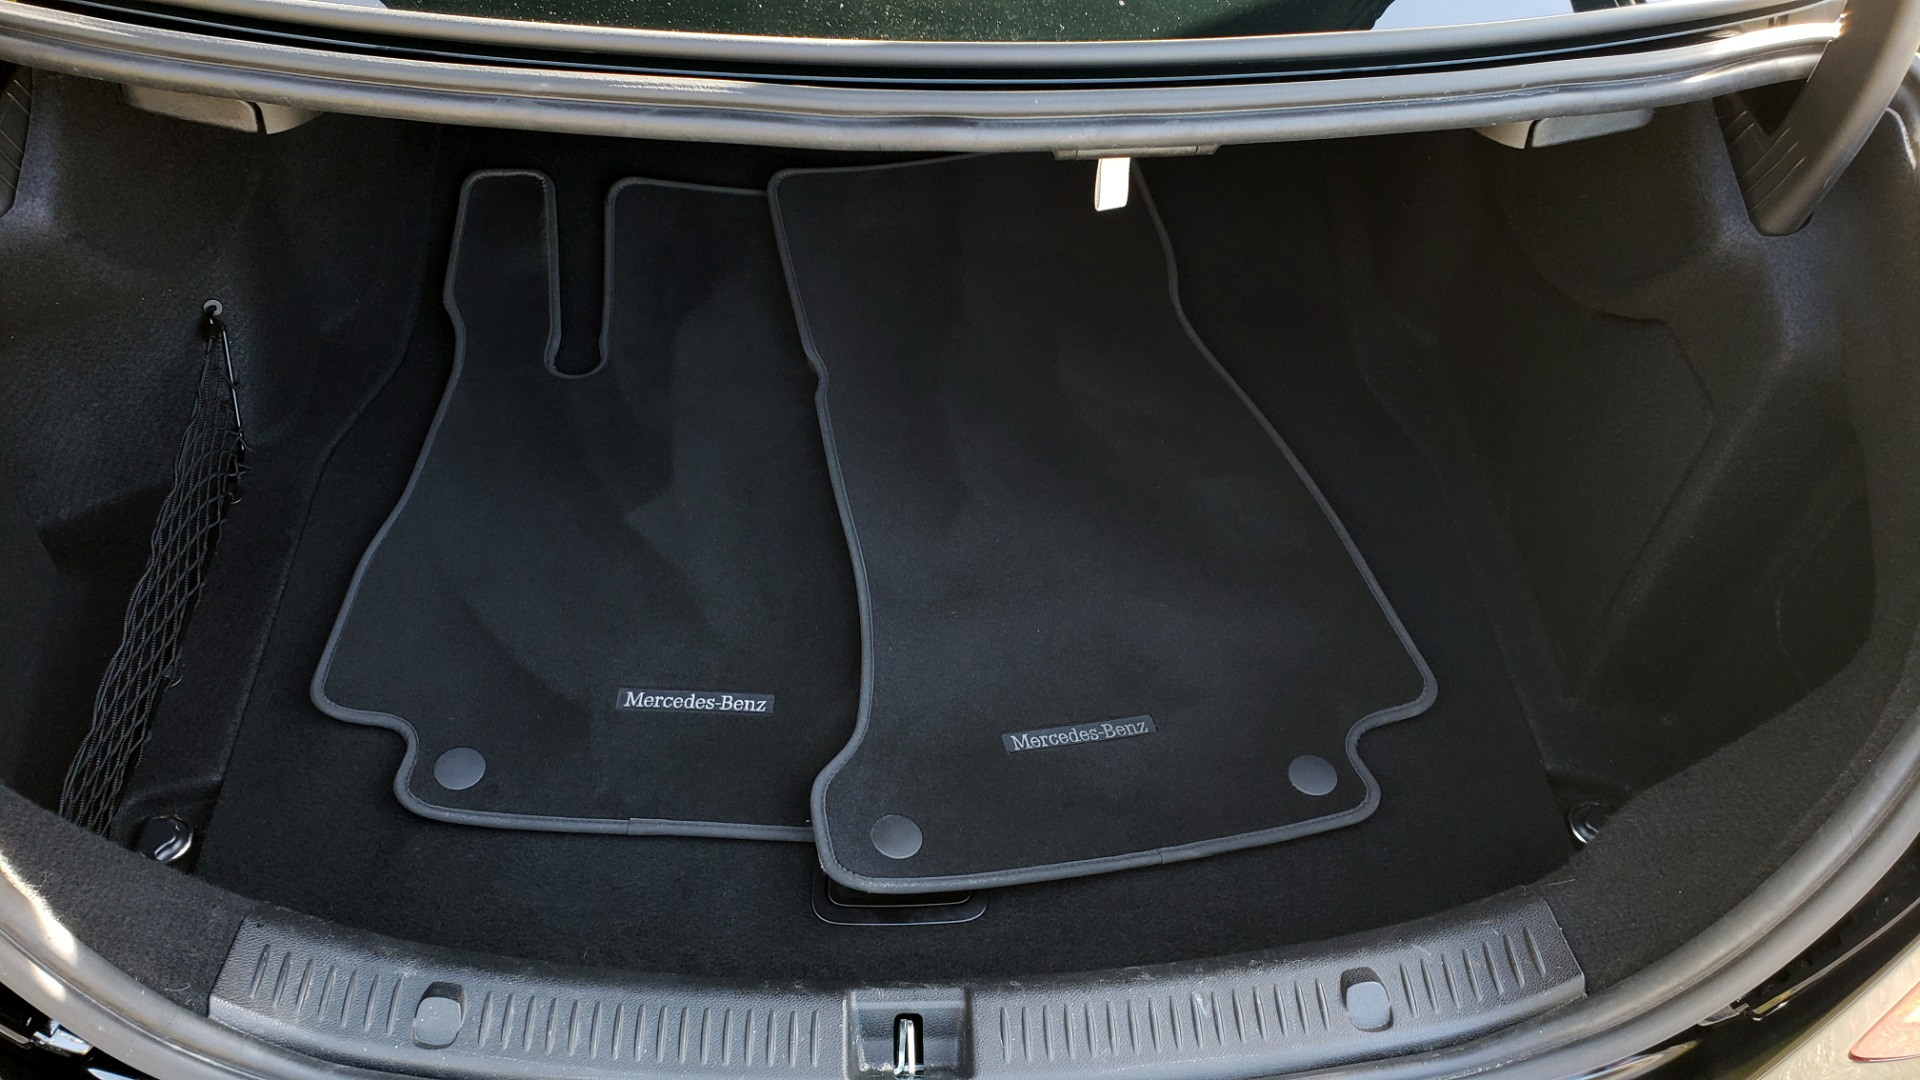 Used 2017 Mercedes-Benz E-CLASS E 300 PREMIUM / NAV / SUNROOF / BURMESTER / HTD STS / REARVIEW for sale $29,995 at Formula Imports in Charlotte NC 28227 13